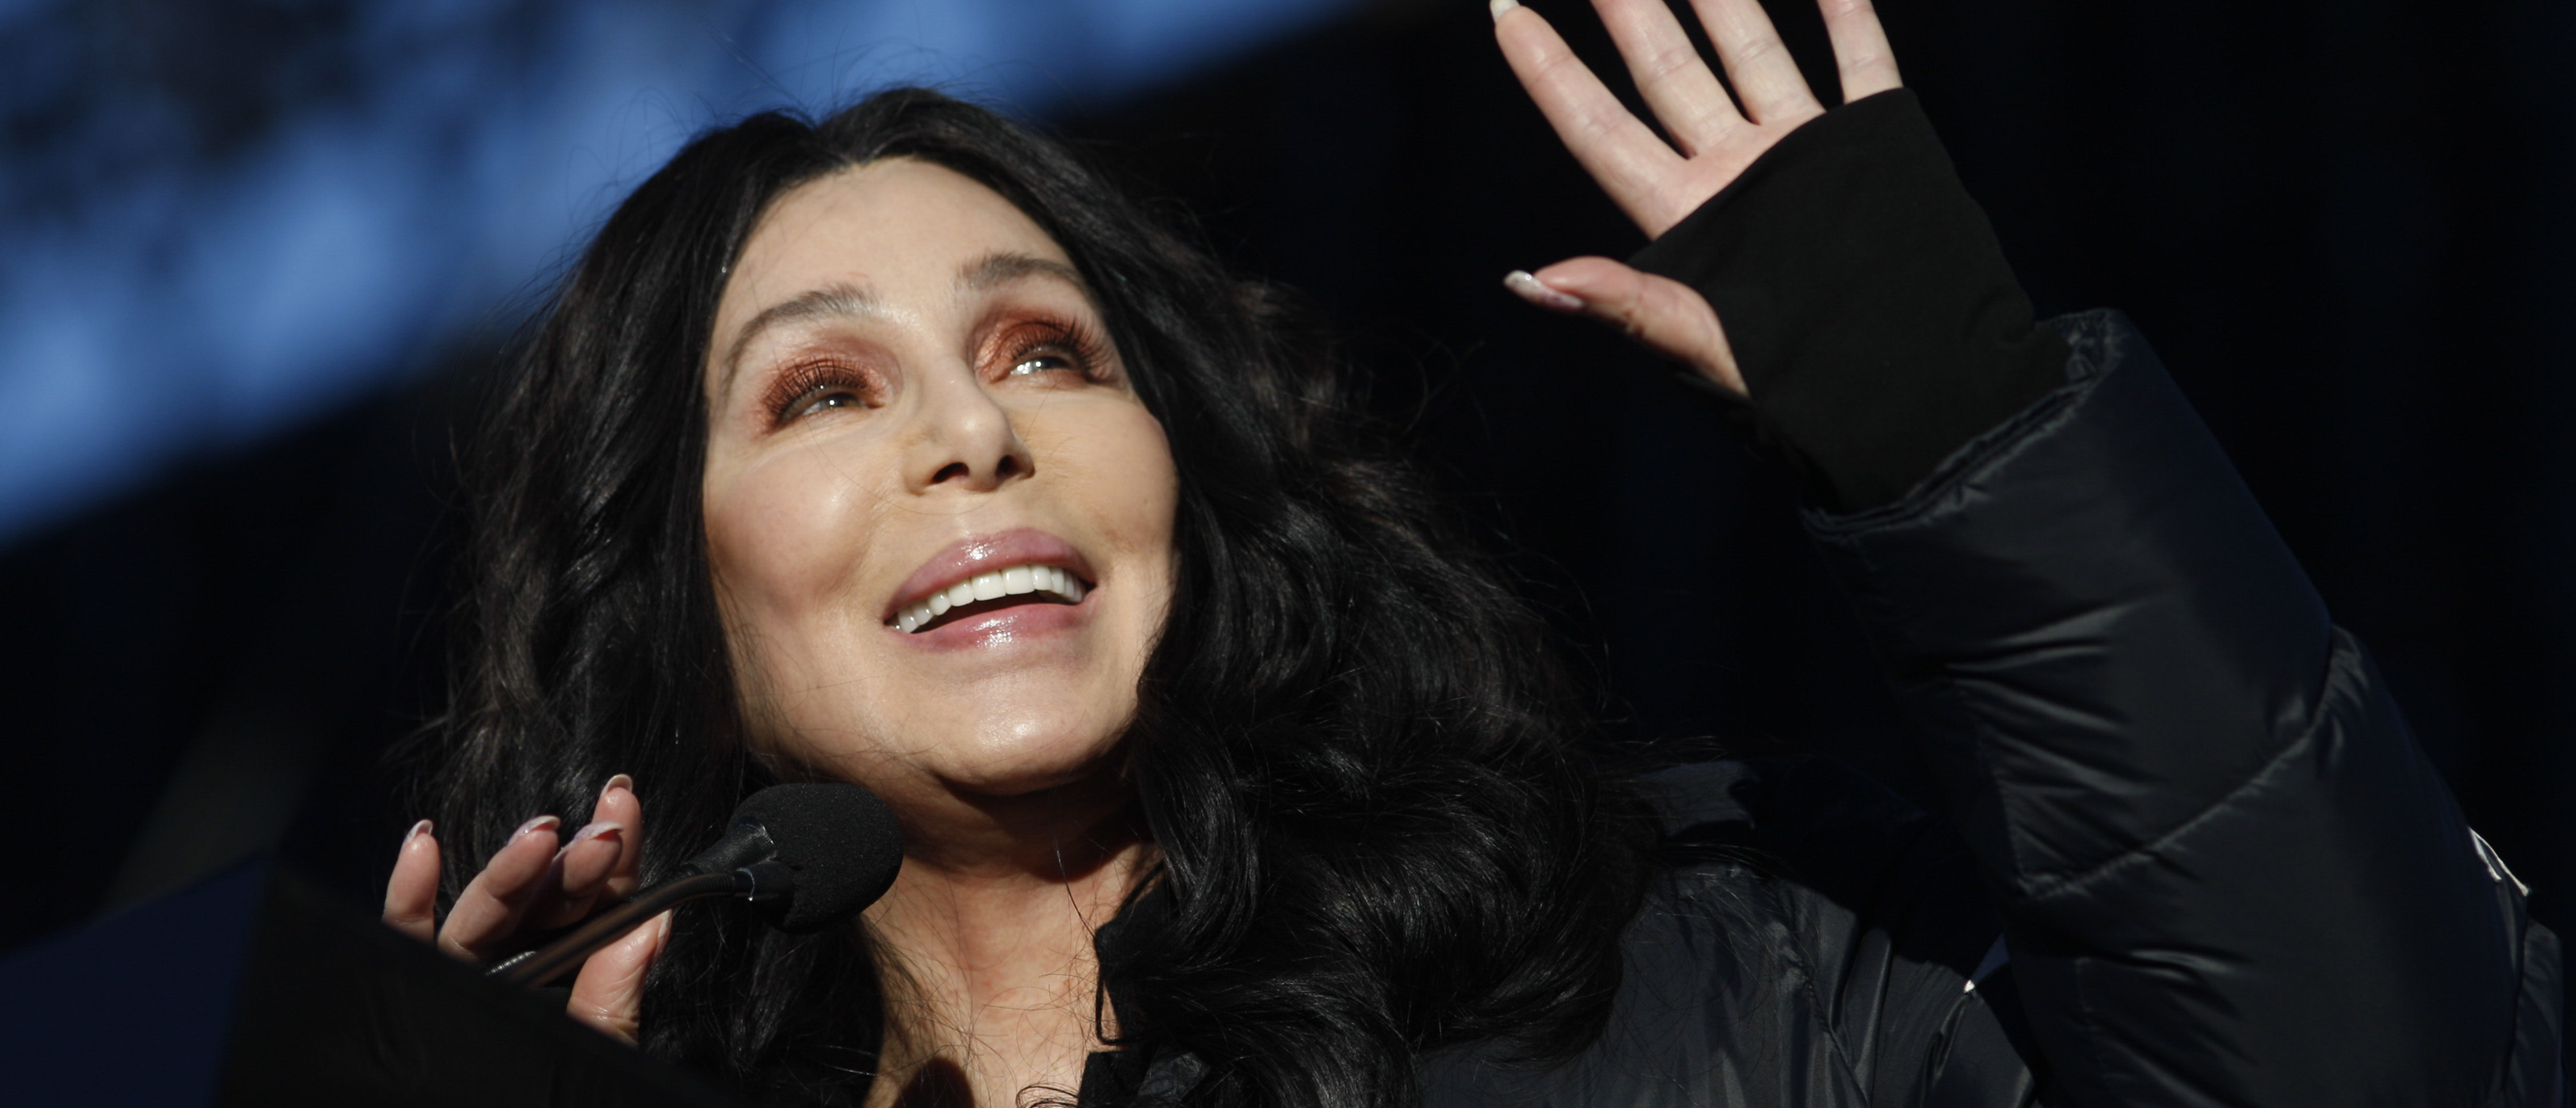 """LAS VEGAS, NV - JANUARY 21: Singer/actress Cher speaks during the Women's March """"Power to the Polls"""" voter registration tour launch at Sam Boyd Stadium on January 21, 2018, in Las Vegas, Nevada. Demonstrators across the nation gathered over the weekend, one year after the historic Women's March on Washington, D.C., to protest President Donald Trump's administration and to raise awareness for women's issues. (Photo by Sam Morris/Getty Images)"""